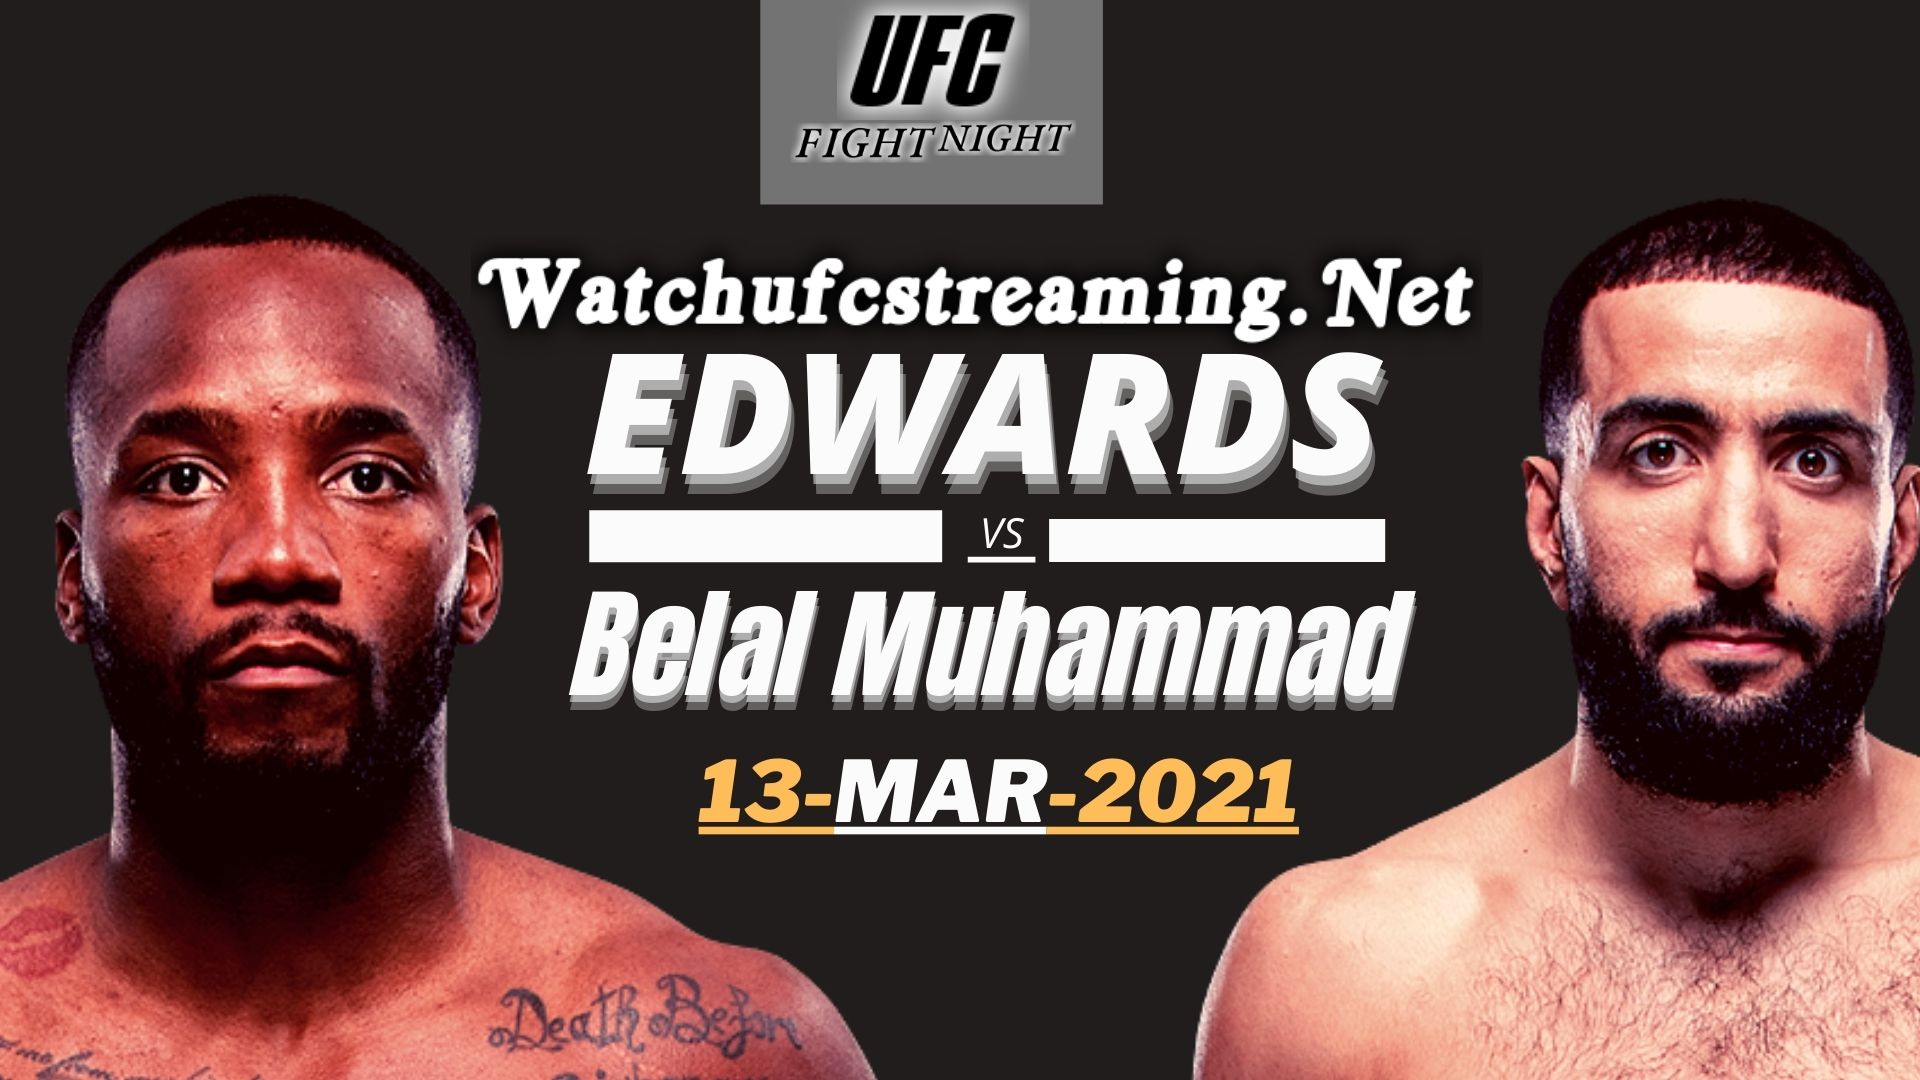 UFC | Edwards Vs Belal Highlights 2021 - Welterweight